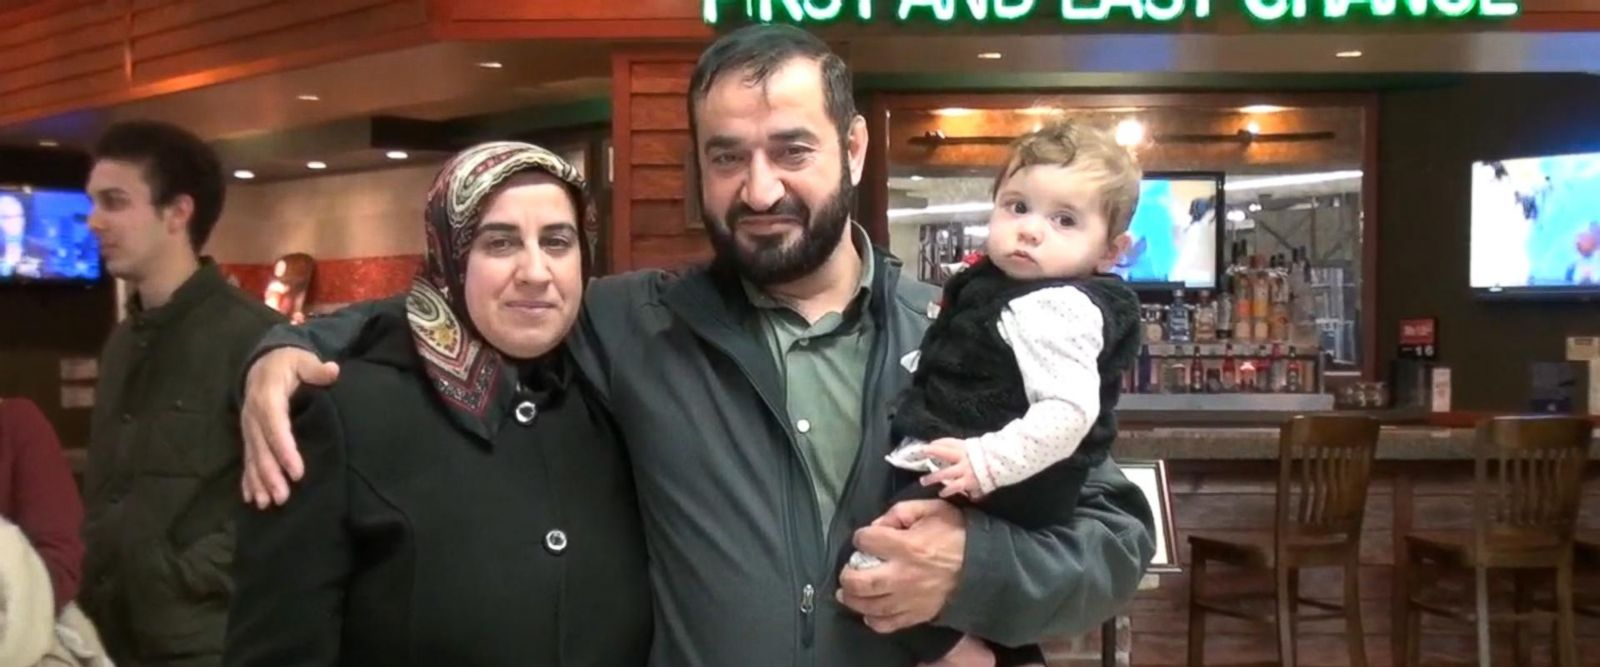 VIDEO: Syrian single mother finally reunites with family in California